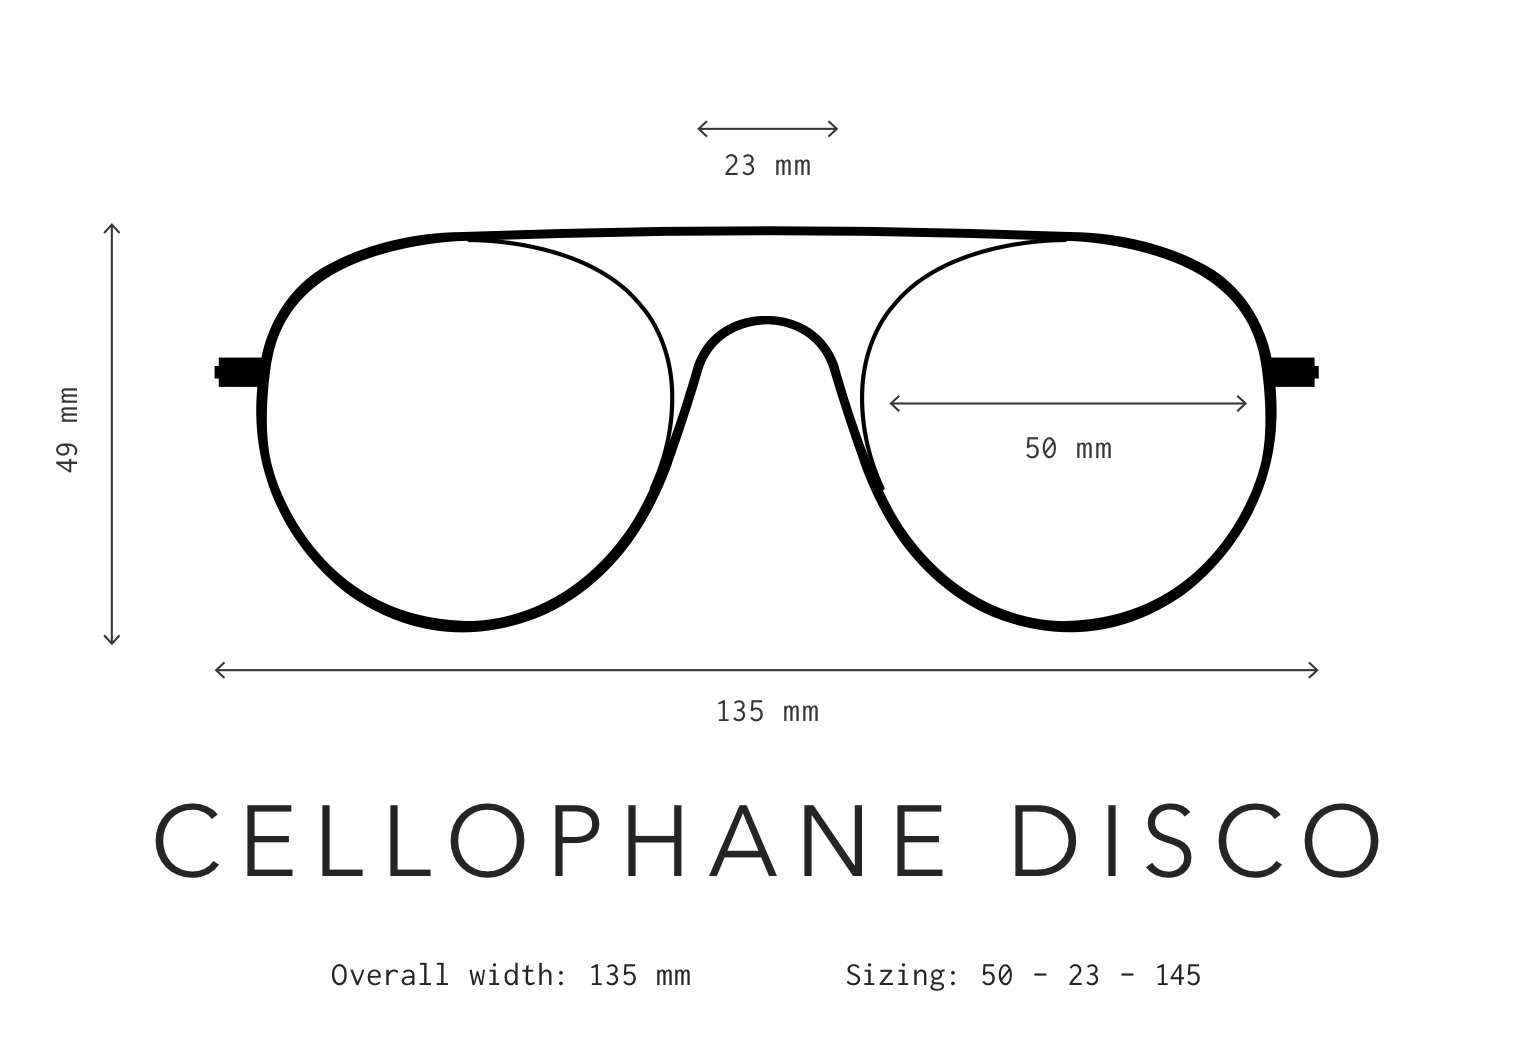 Cellophane Disco Sunglasses Sizing Information